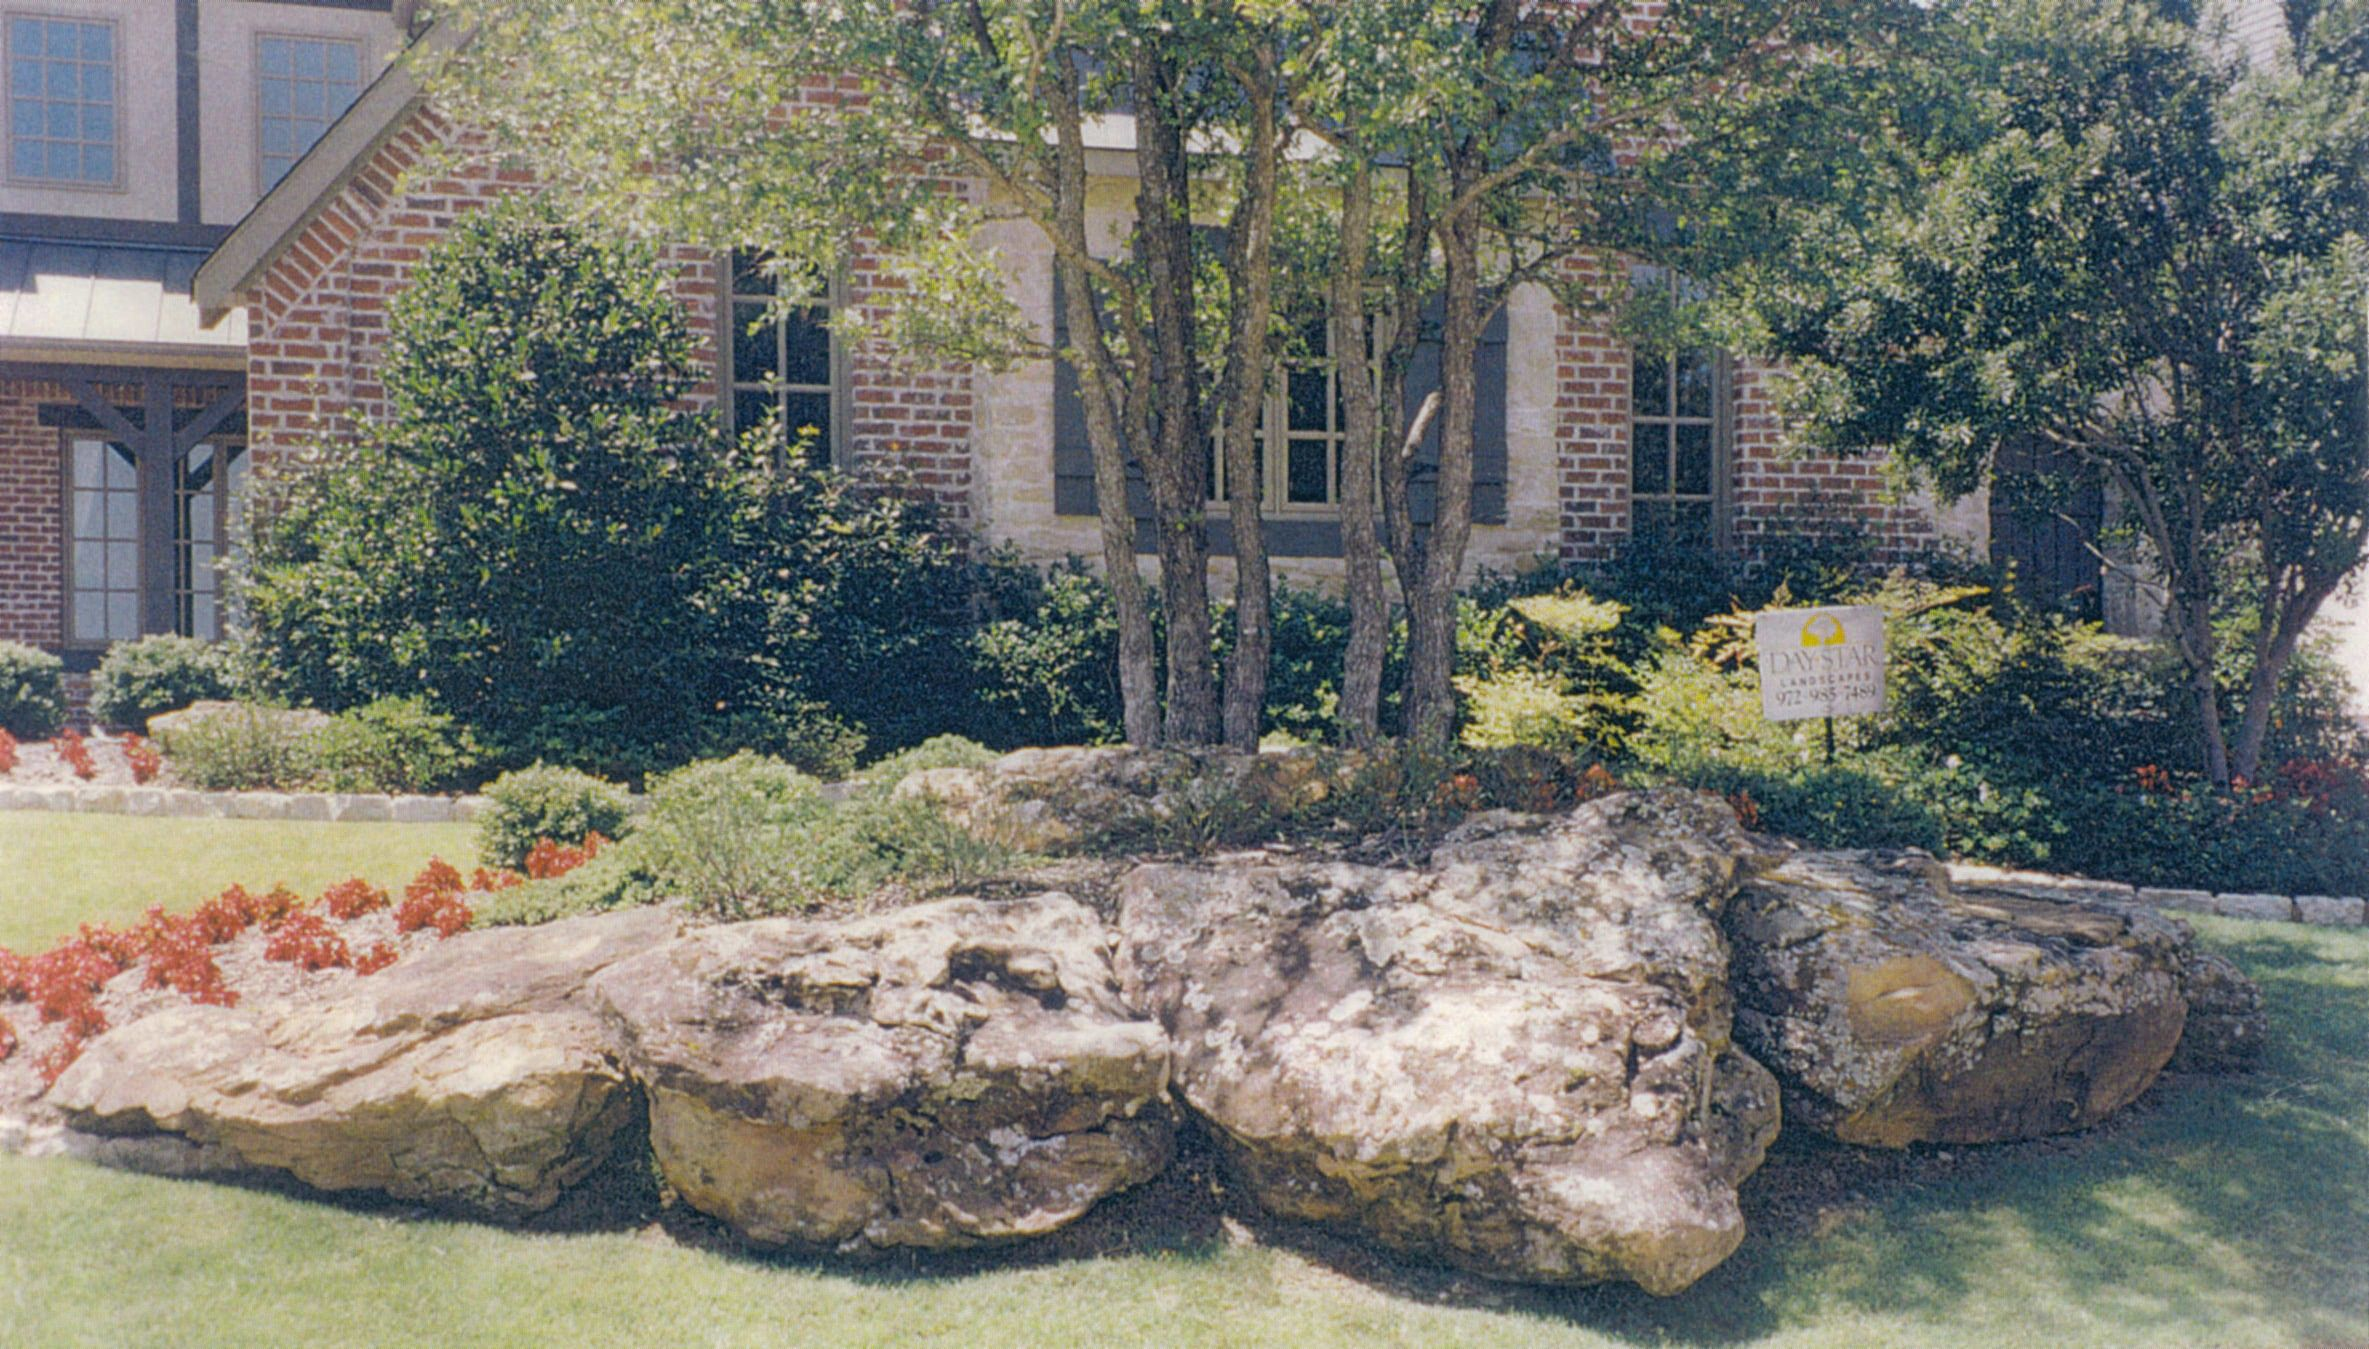 Landscaping with Boulders Boulders Pinterest To be